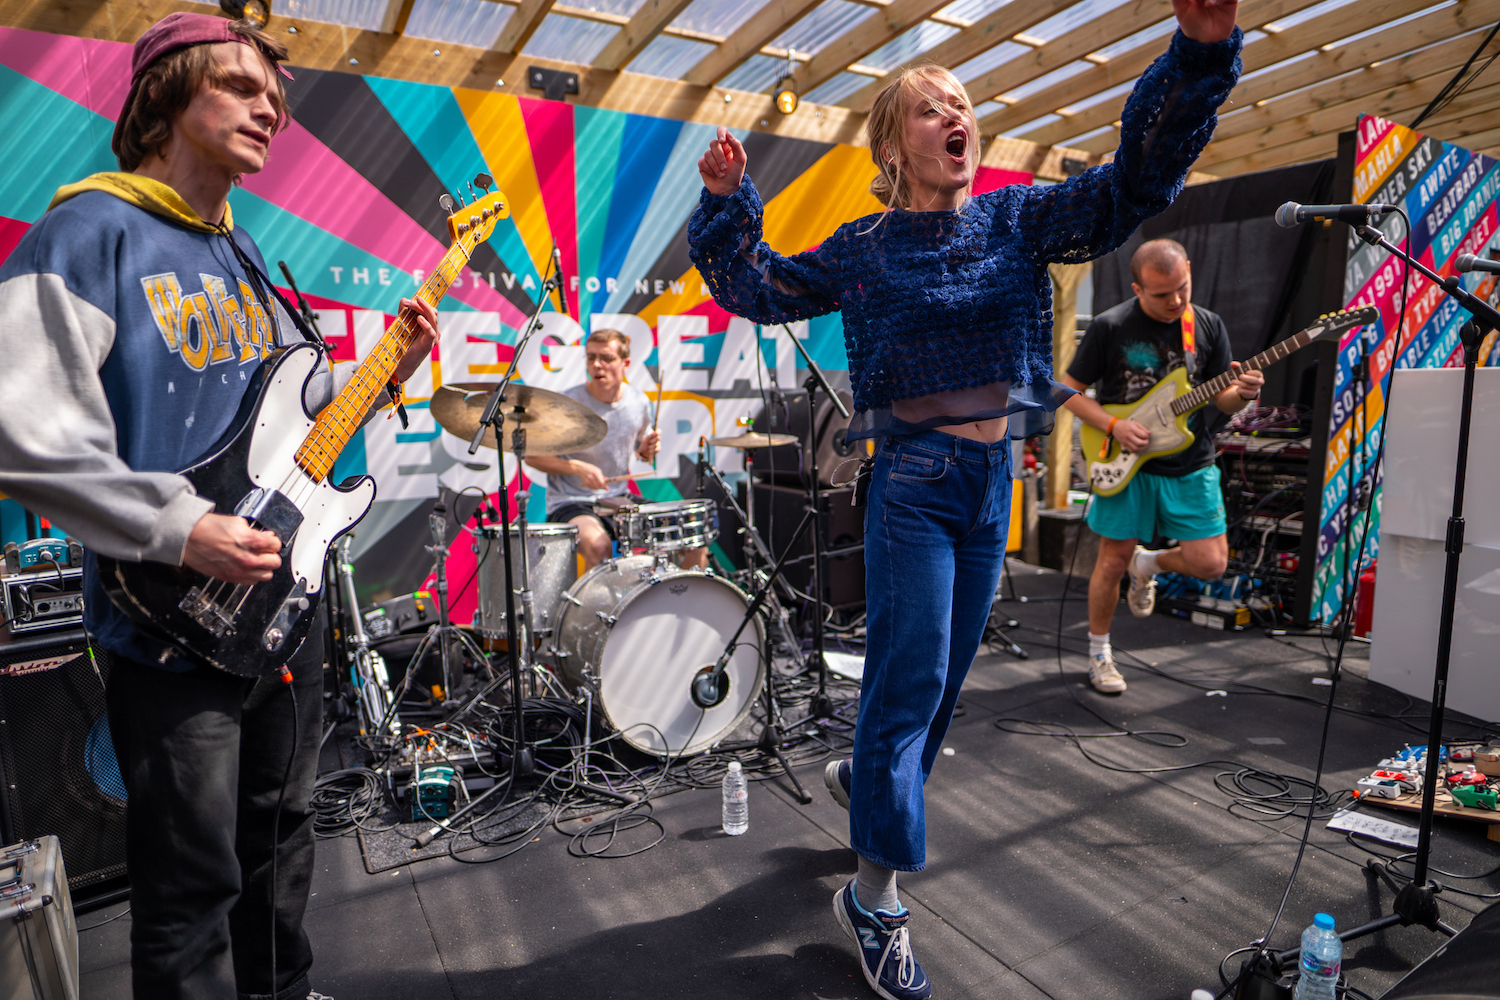 The Great Escape announces themes for the festival's 2020 conference